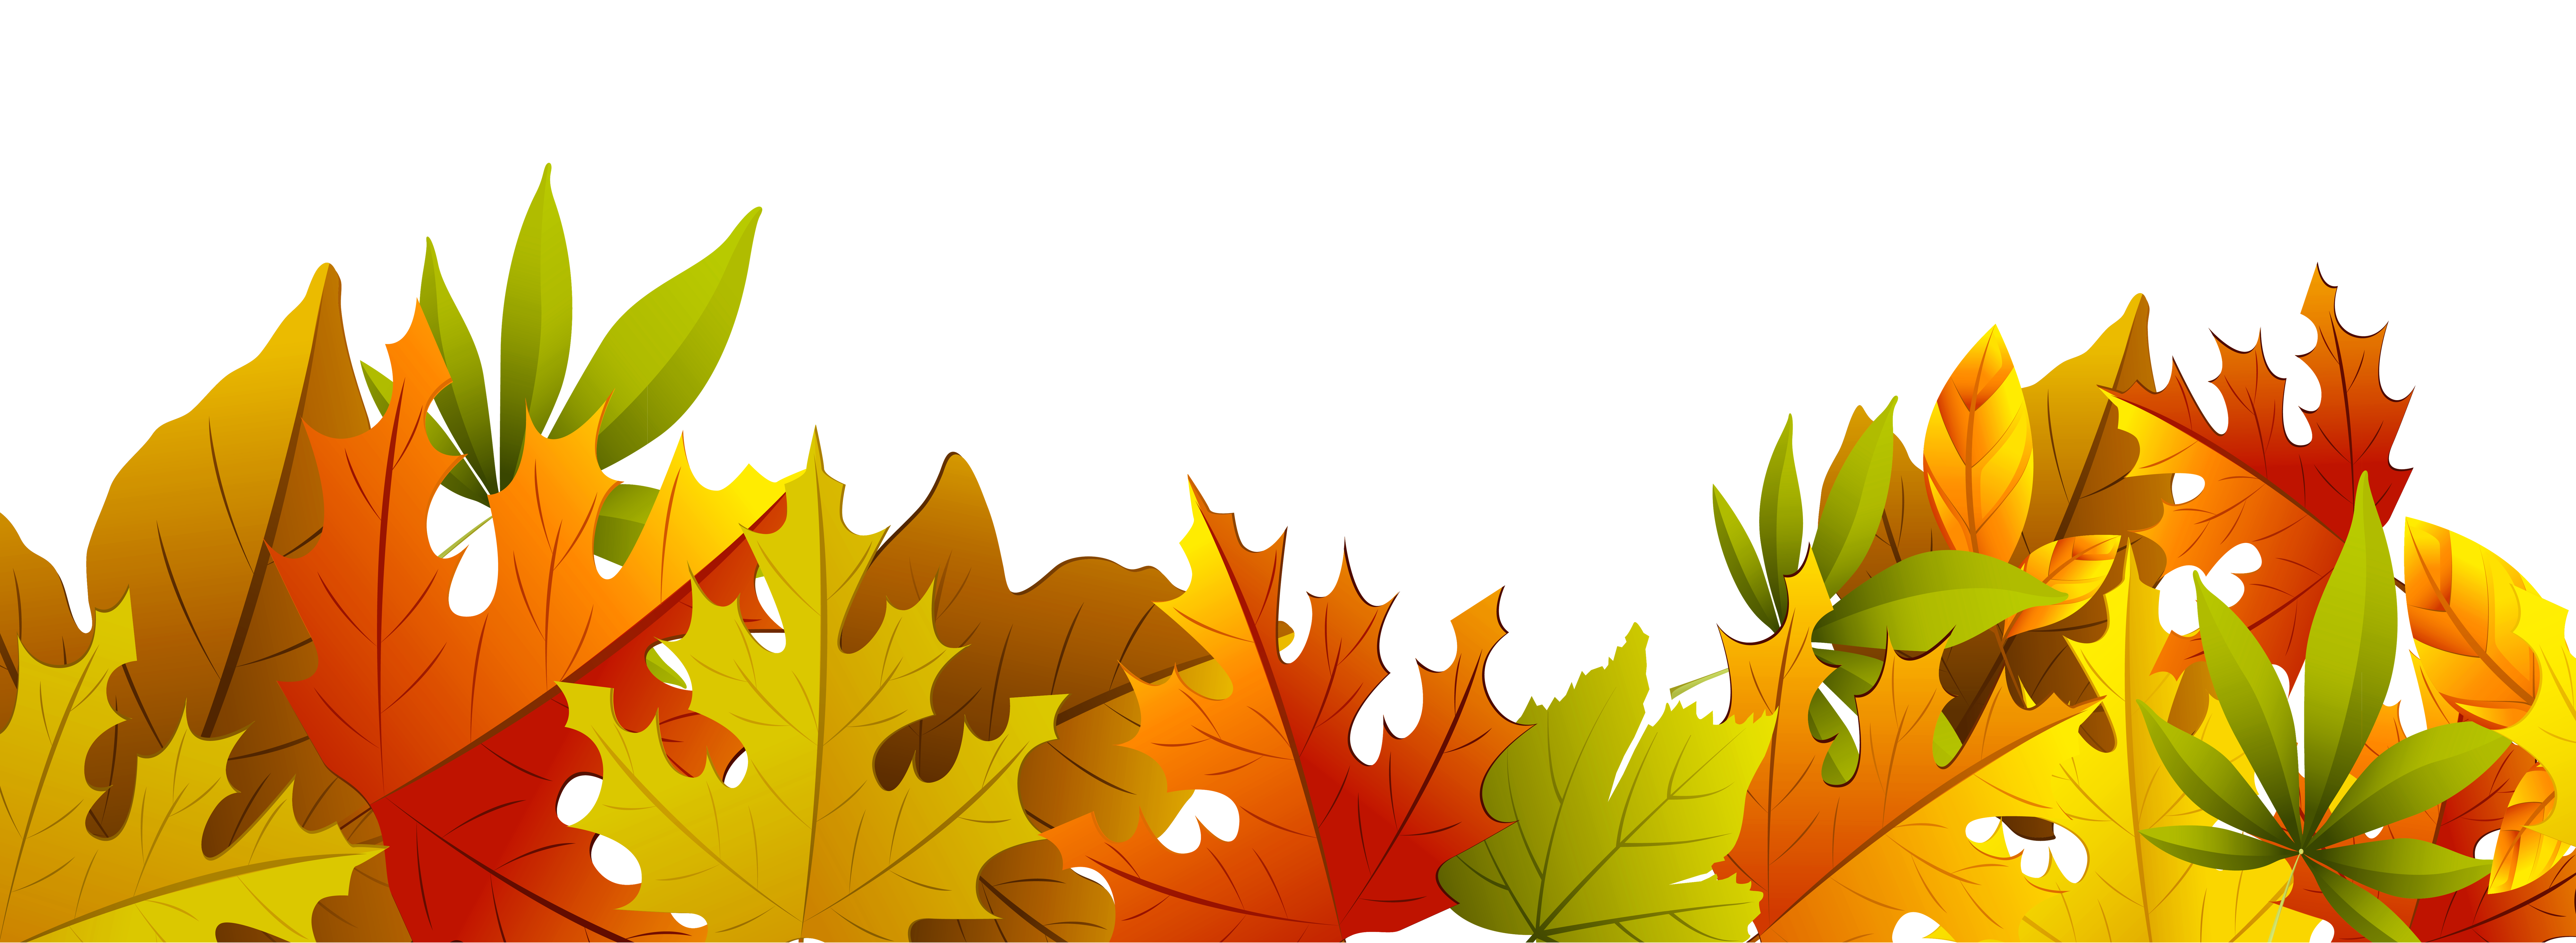 Decorative Autumn Leaves Clipart-Decorative autumn leaves clipart-6